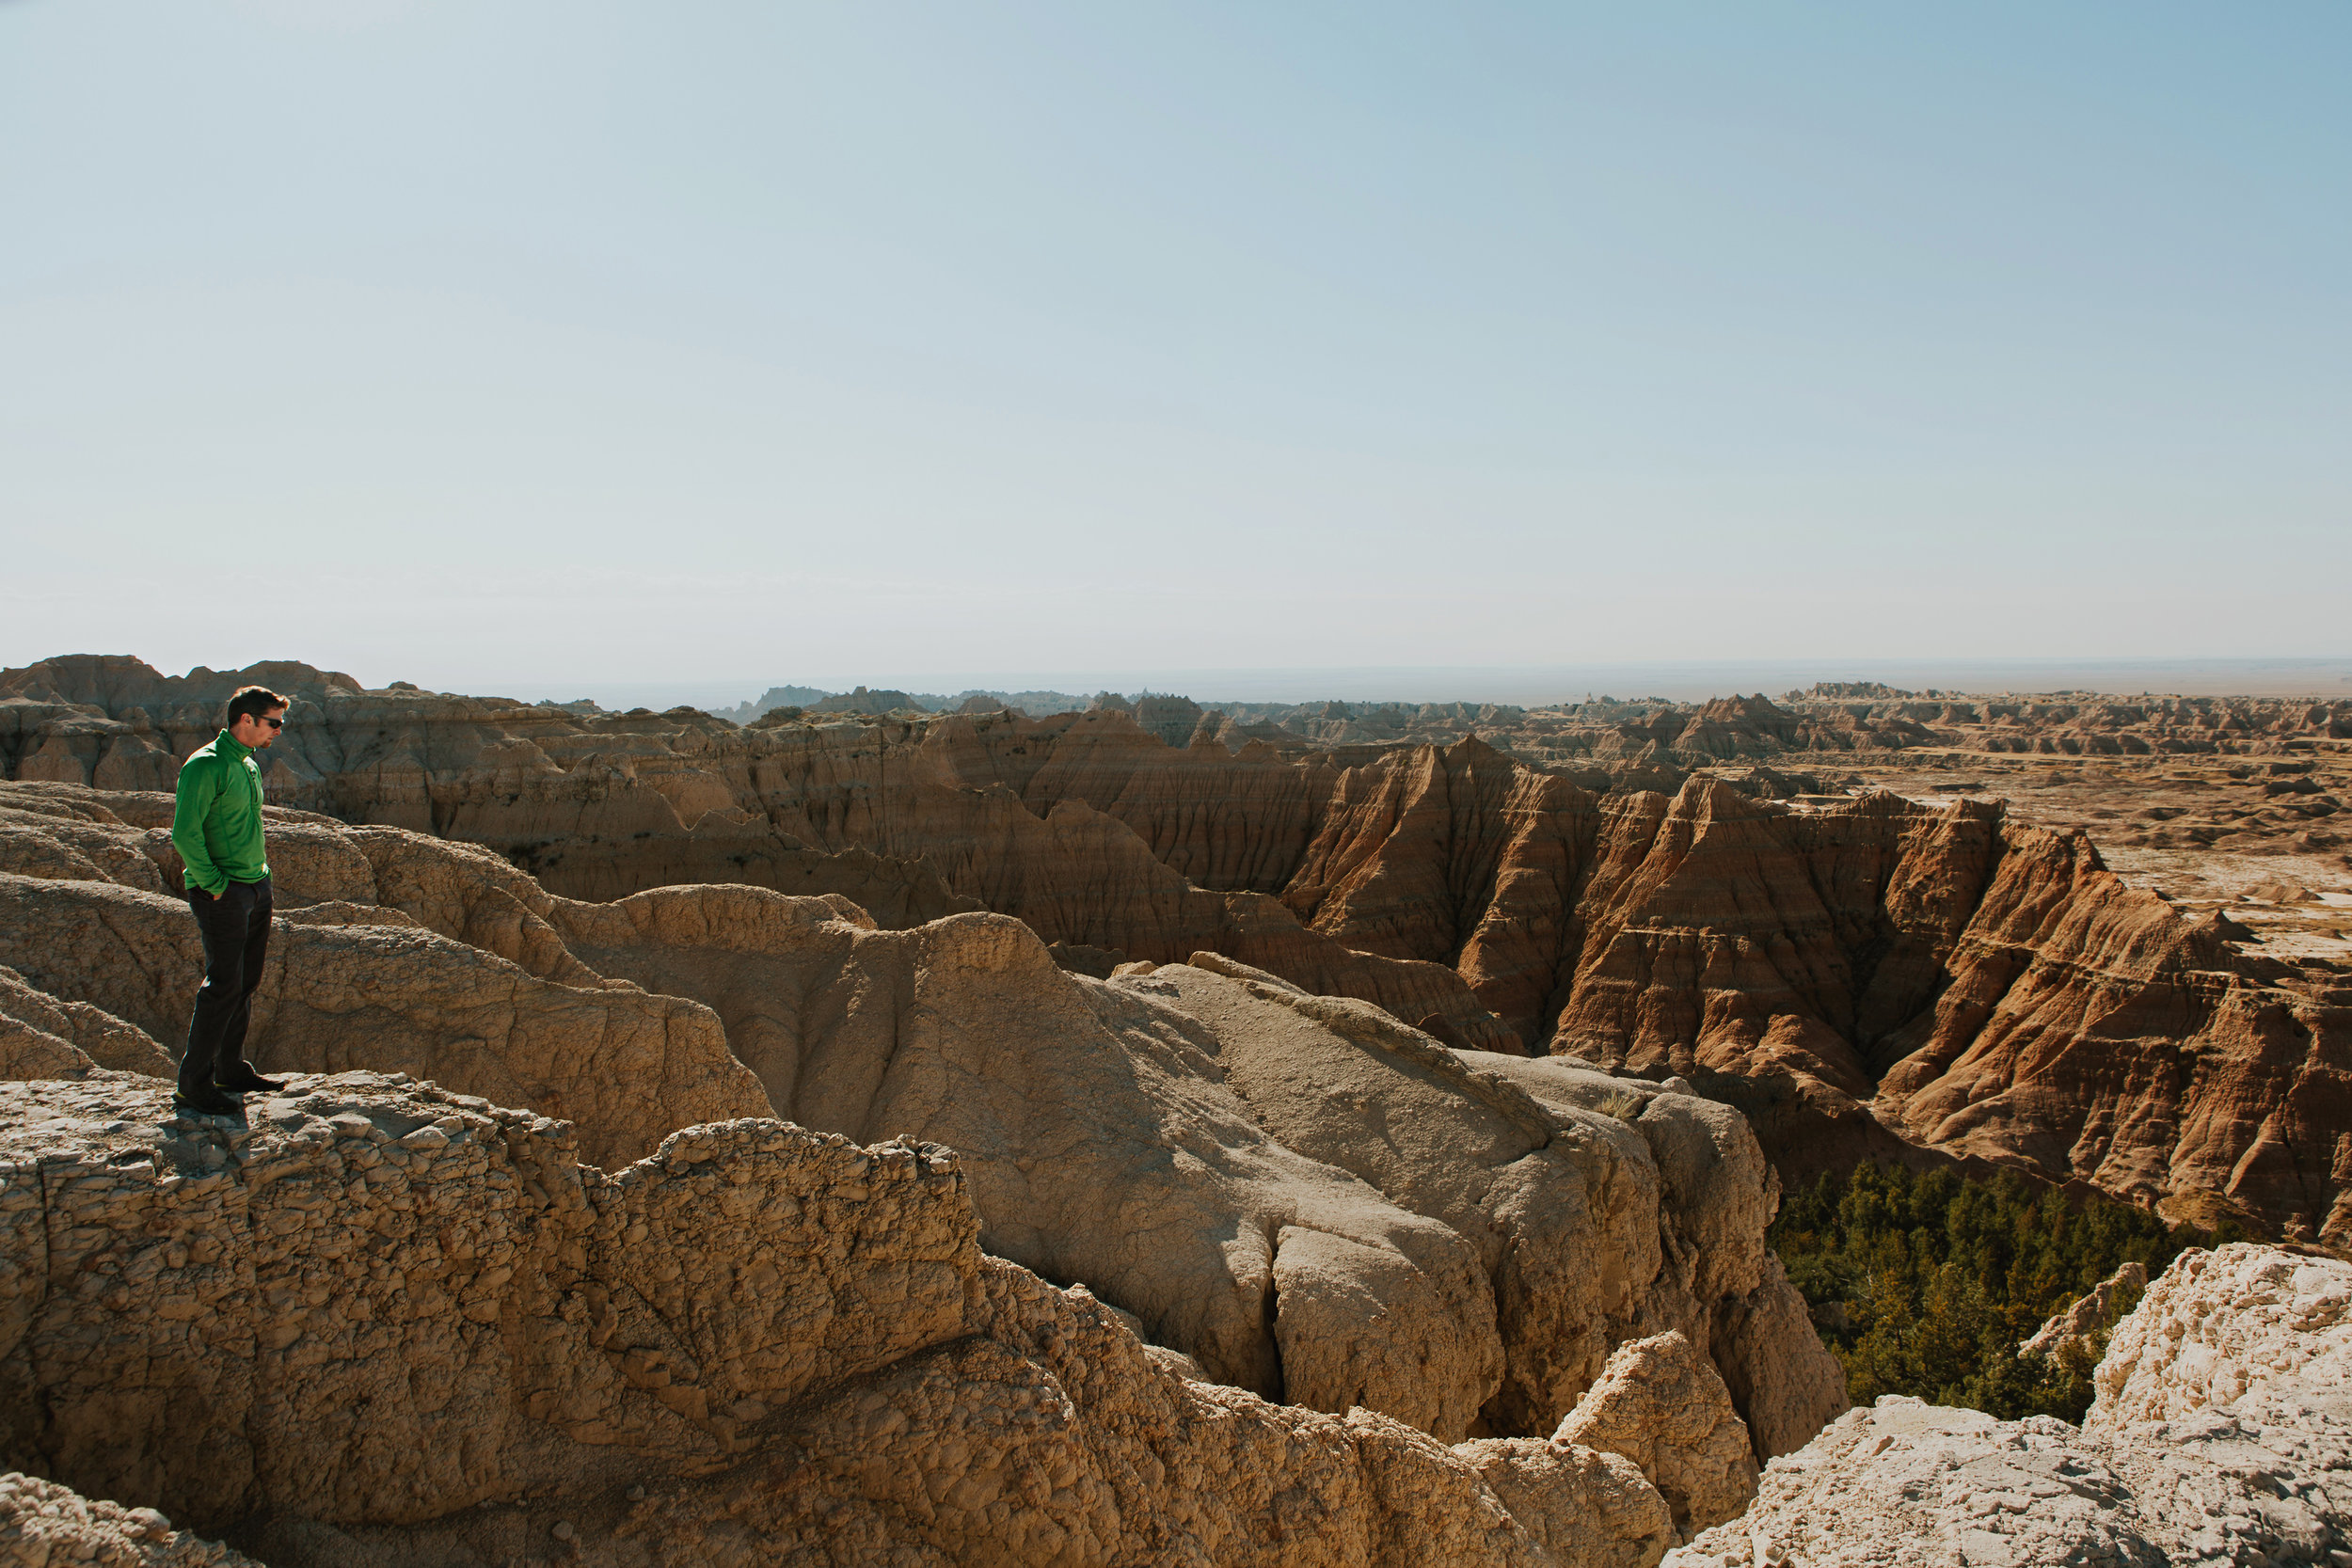 CindyGiovagnoli_South_Dakota_Wind_Cave_Badland_National_Park_Mount_Rushmore_bison_pronghorn_hiking_prairie-027.jpg